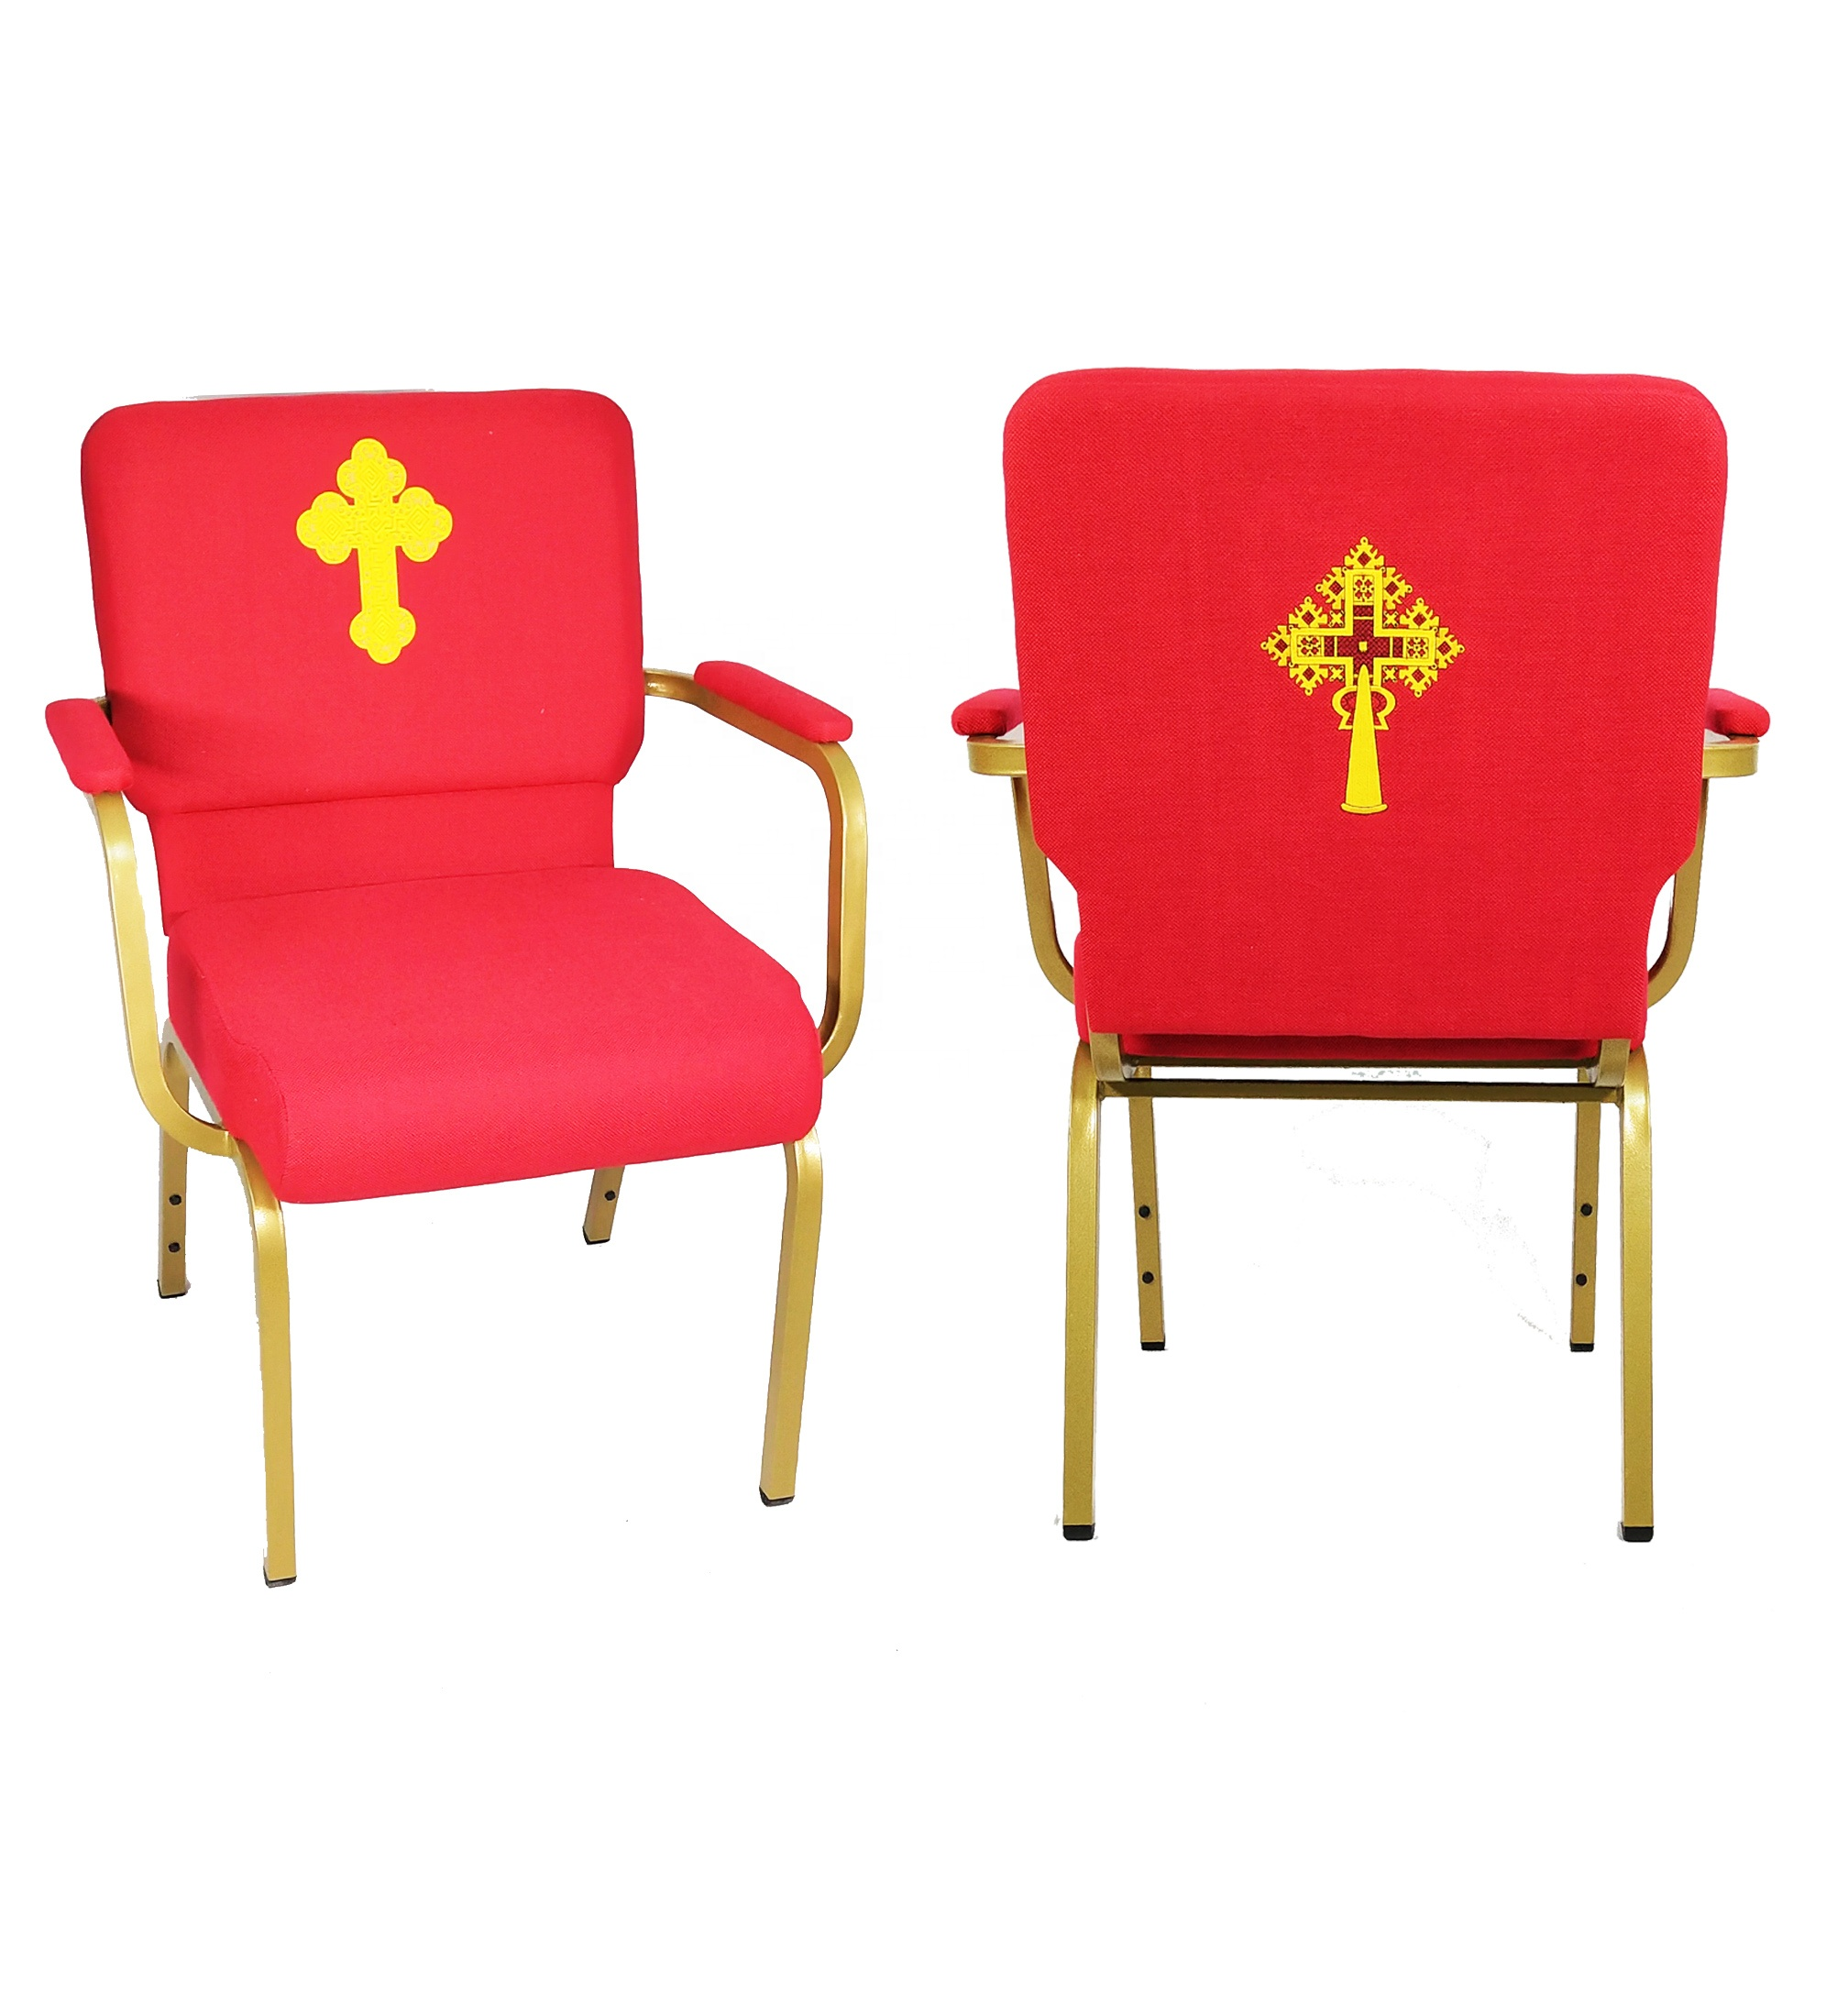 Armrest church chair Featured Image